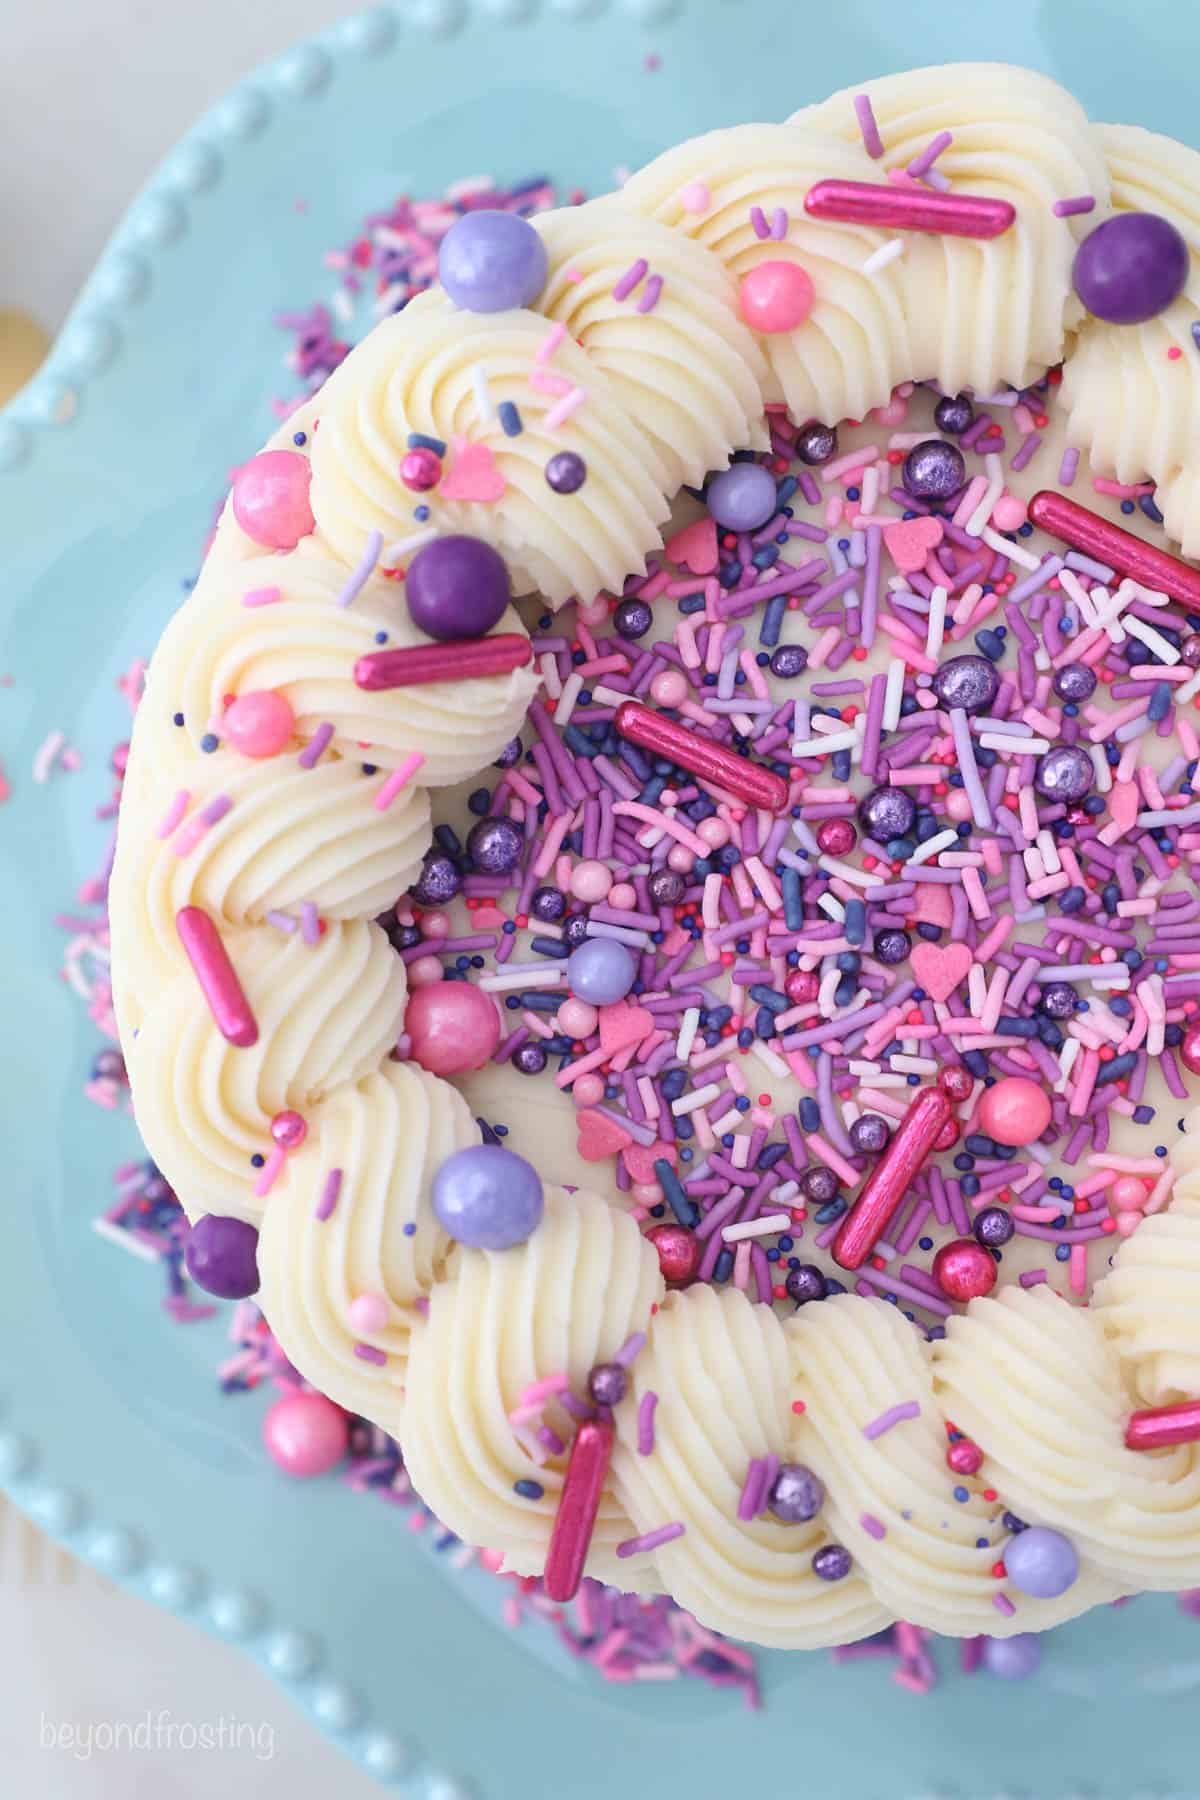 overhead view of a decorated cake with pink and purple sprinkles